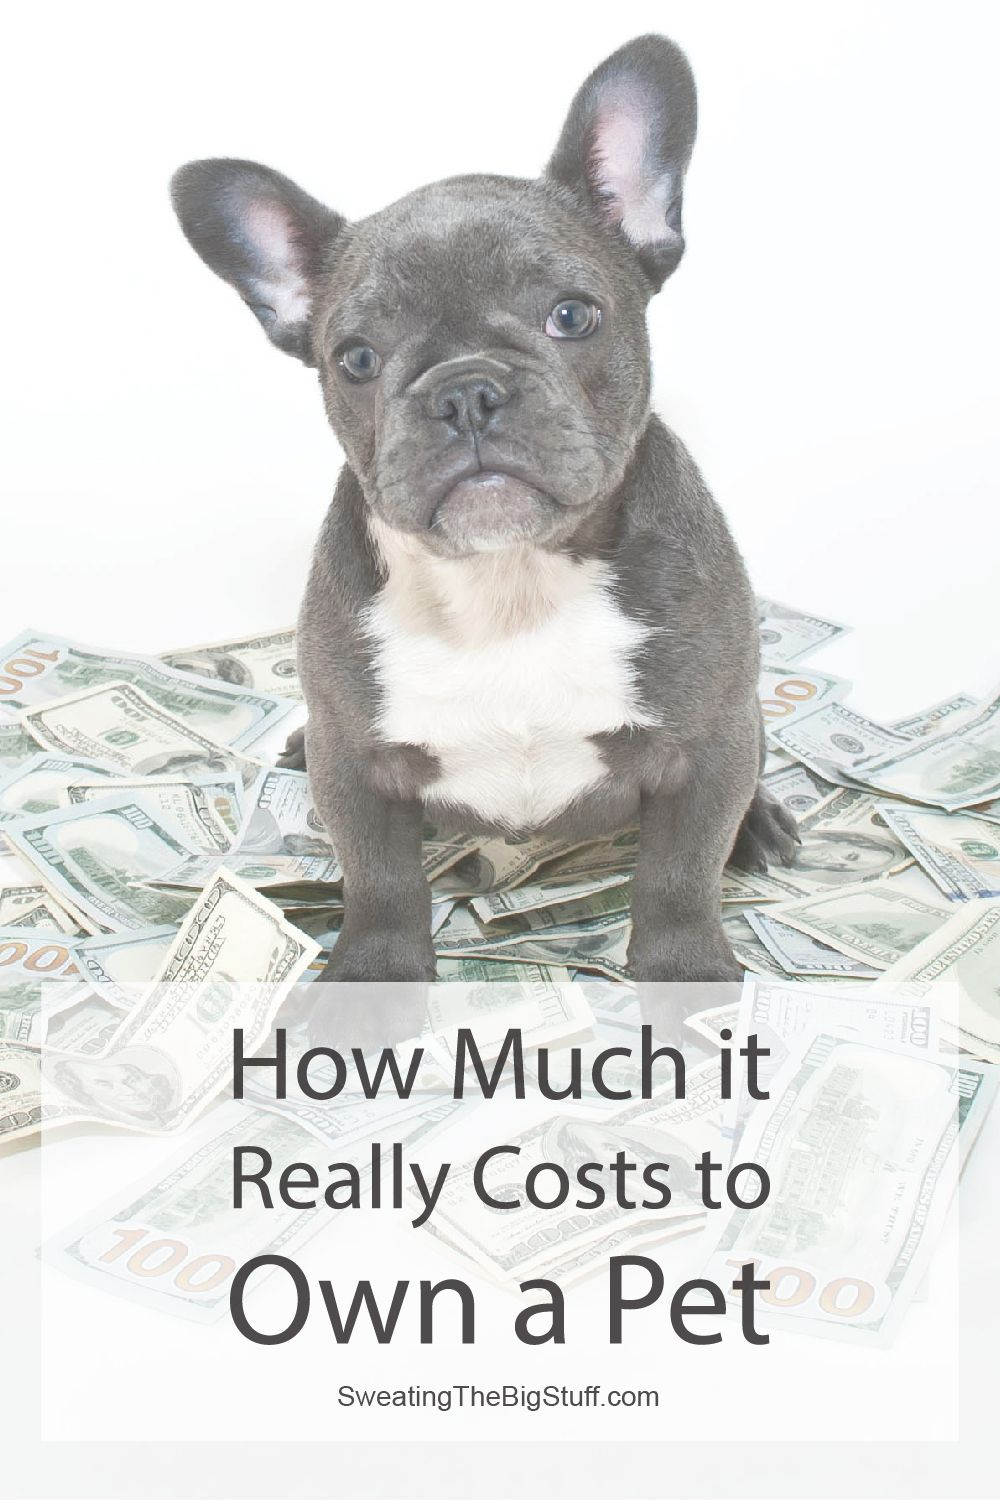 How Much it Really Costs to Own a Pet